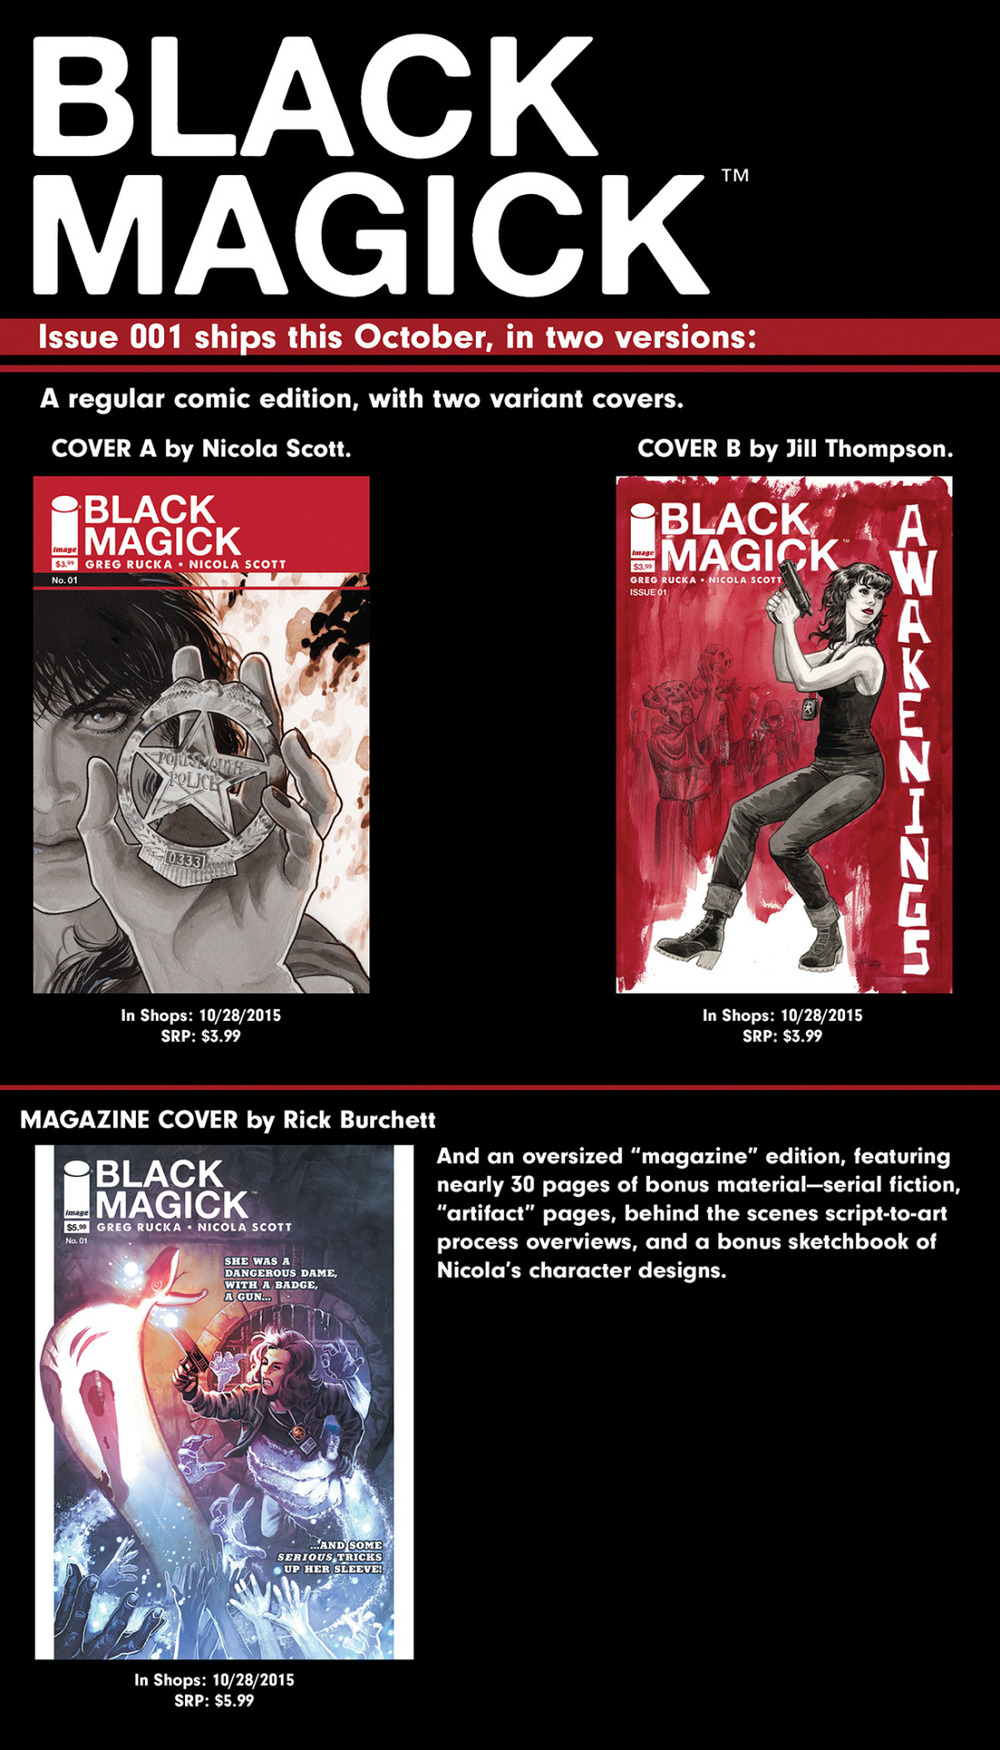 ruckawriter :      blackmagickcomic :     Good morning, gentle readers!   BLACK MAGICK #1 FOC's THIS COMING MONDAY, OCTOBER 5!     As the handy image, created by our hyper-talented designer Eric Trautmann, above shows, this comes in three flavors:    A 40-page ad-free comic with a cover by Nicola Scott, featuring some fun bonuses, including part one of a new piece of fiction from Greg Rucka.   A 40-page ad-free comic with a cover by Jill Thompson, with all the same goodies as above.   A 64-PAGE AD-FREE MAGAZINE-SIZE COMIC (I put that in all caps because it's literally and figuratively huge and we're all very proud of it), featuring a cover by Rick Burchett and Romulo Fajardo, with ALMOST 30 PAGES OF BONUS MATERIAL.    Retailers, make sure you get those orders in, and readers, talk to you  friendly neighborhood comic shop and ask them to pre-order the book for  you, so you guarantee yourself a copy.     And please feel free to utilize the handy ask button that's up there somewhere if you have any questions or comments.     See you in October!     OK, two things.   First, there is a  BLACK MAGICK  tumblr, that is being curated by our amazing editor (editrix? I just like using words with 'x's in them…), Jeanine Schaefer (  karatemonkey  ). You should totally follow that, because it  might  have some cool stuff about the comic, but mostly because Jeanine is Awesome, and she didn't pay me to say that about her or anything and I swear I'm working as fast as I can but a lot of work stacked up while I was in Australia and I'm behind…   Thing Second, there seems to have been some sort of  confusion  with Diamond as to what covers were being offered and where and how. So the thing, here, is that  these are the three versions of the book that are being offered for sale . These have  always been the three versions of the book that we were planning to offer for sale .   Regular comic A - 40 pages, cover by Nic.   Regular comic B - 40 pages, cover by Jill Thompson.   Magazine version - 64 pages, cover by Rick Burchett.   I know, I just repeated exactly what was in the initial post. I believe in being thorough.   We are, as you might imagine, very proud of these.   Hope you dig 'em!